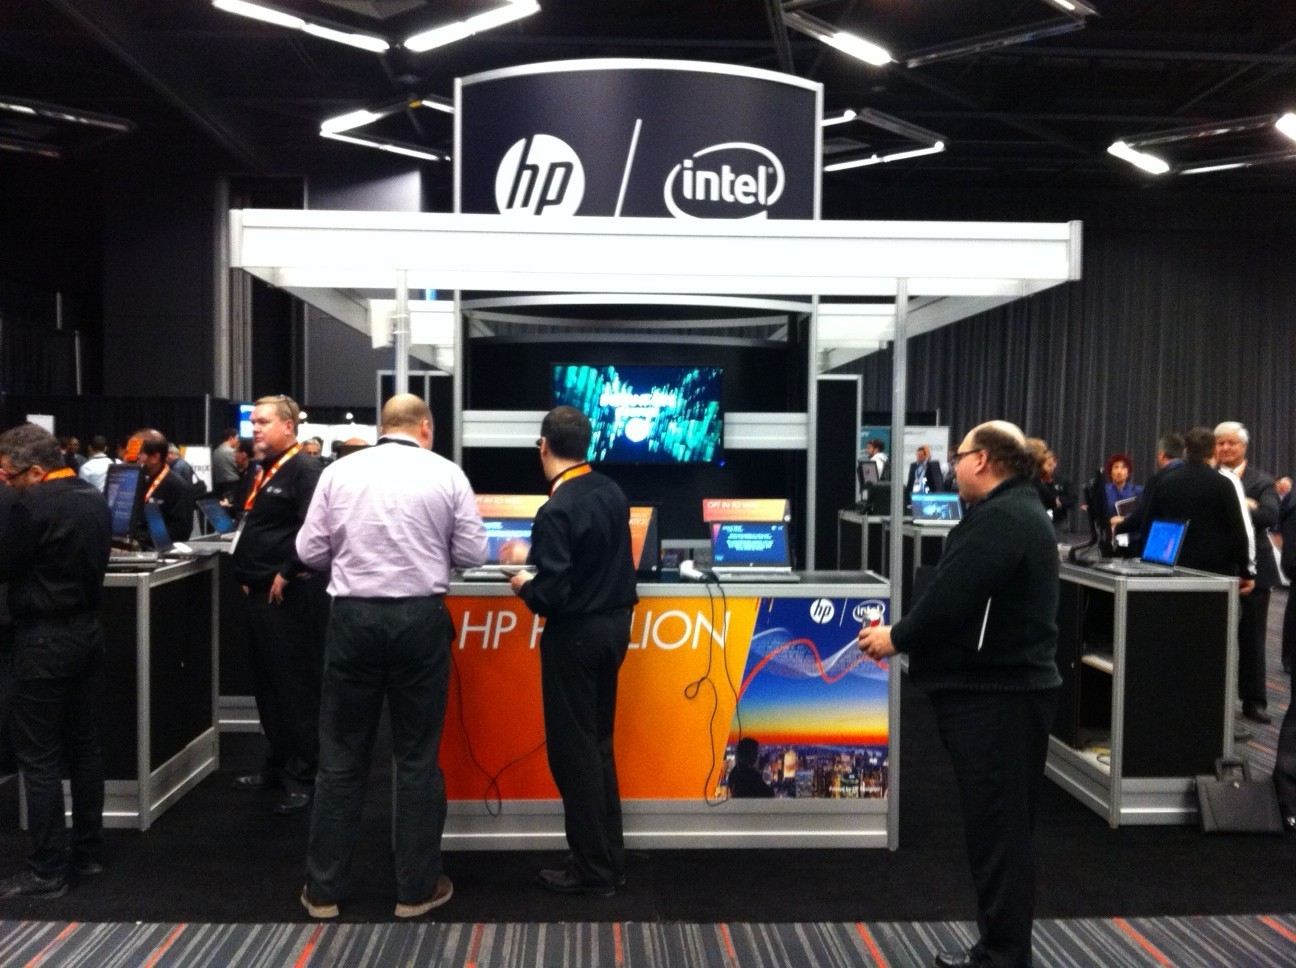 HP Cloud Event Montreal 2012